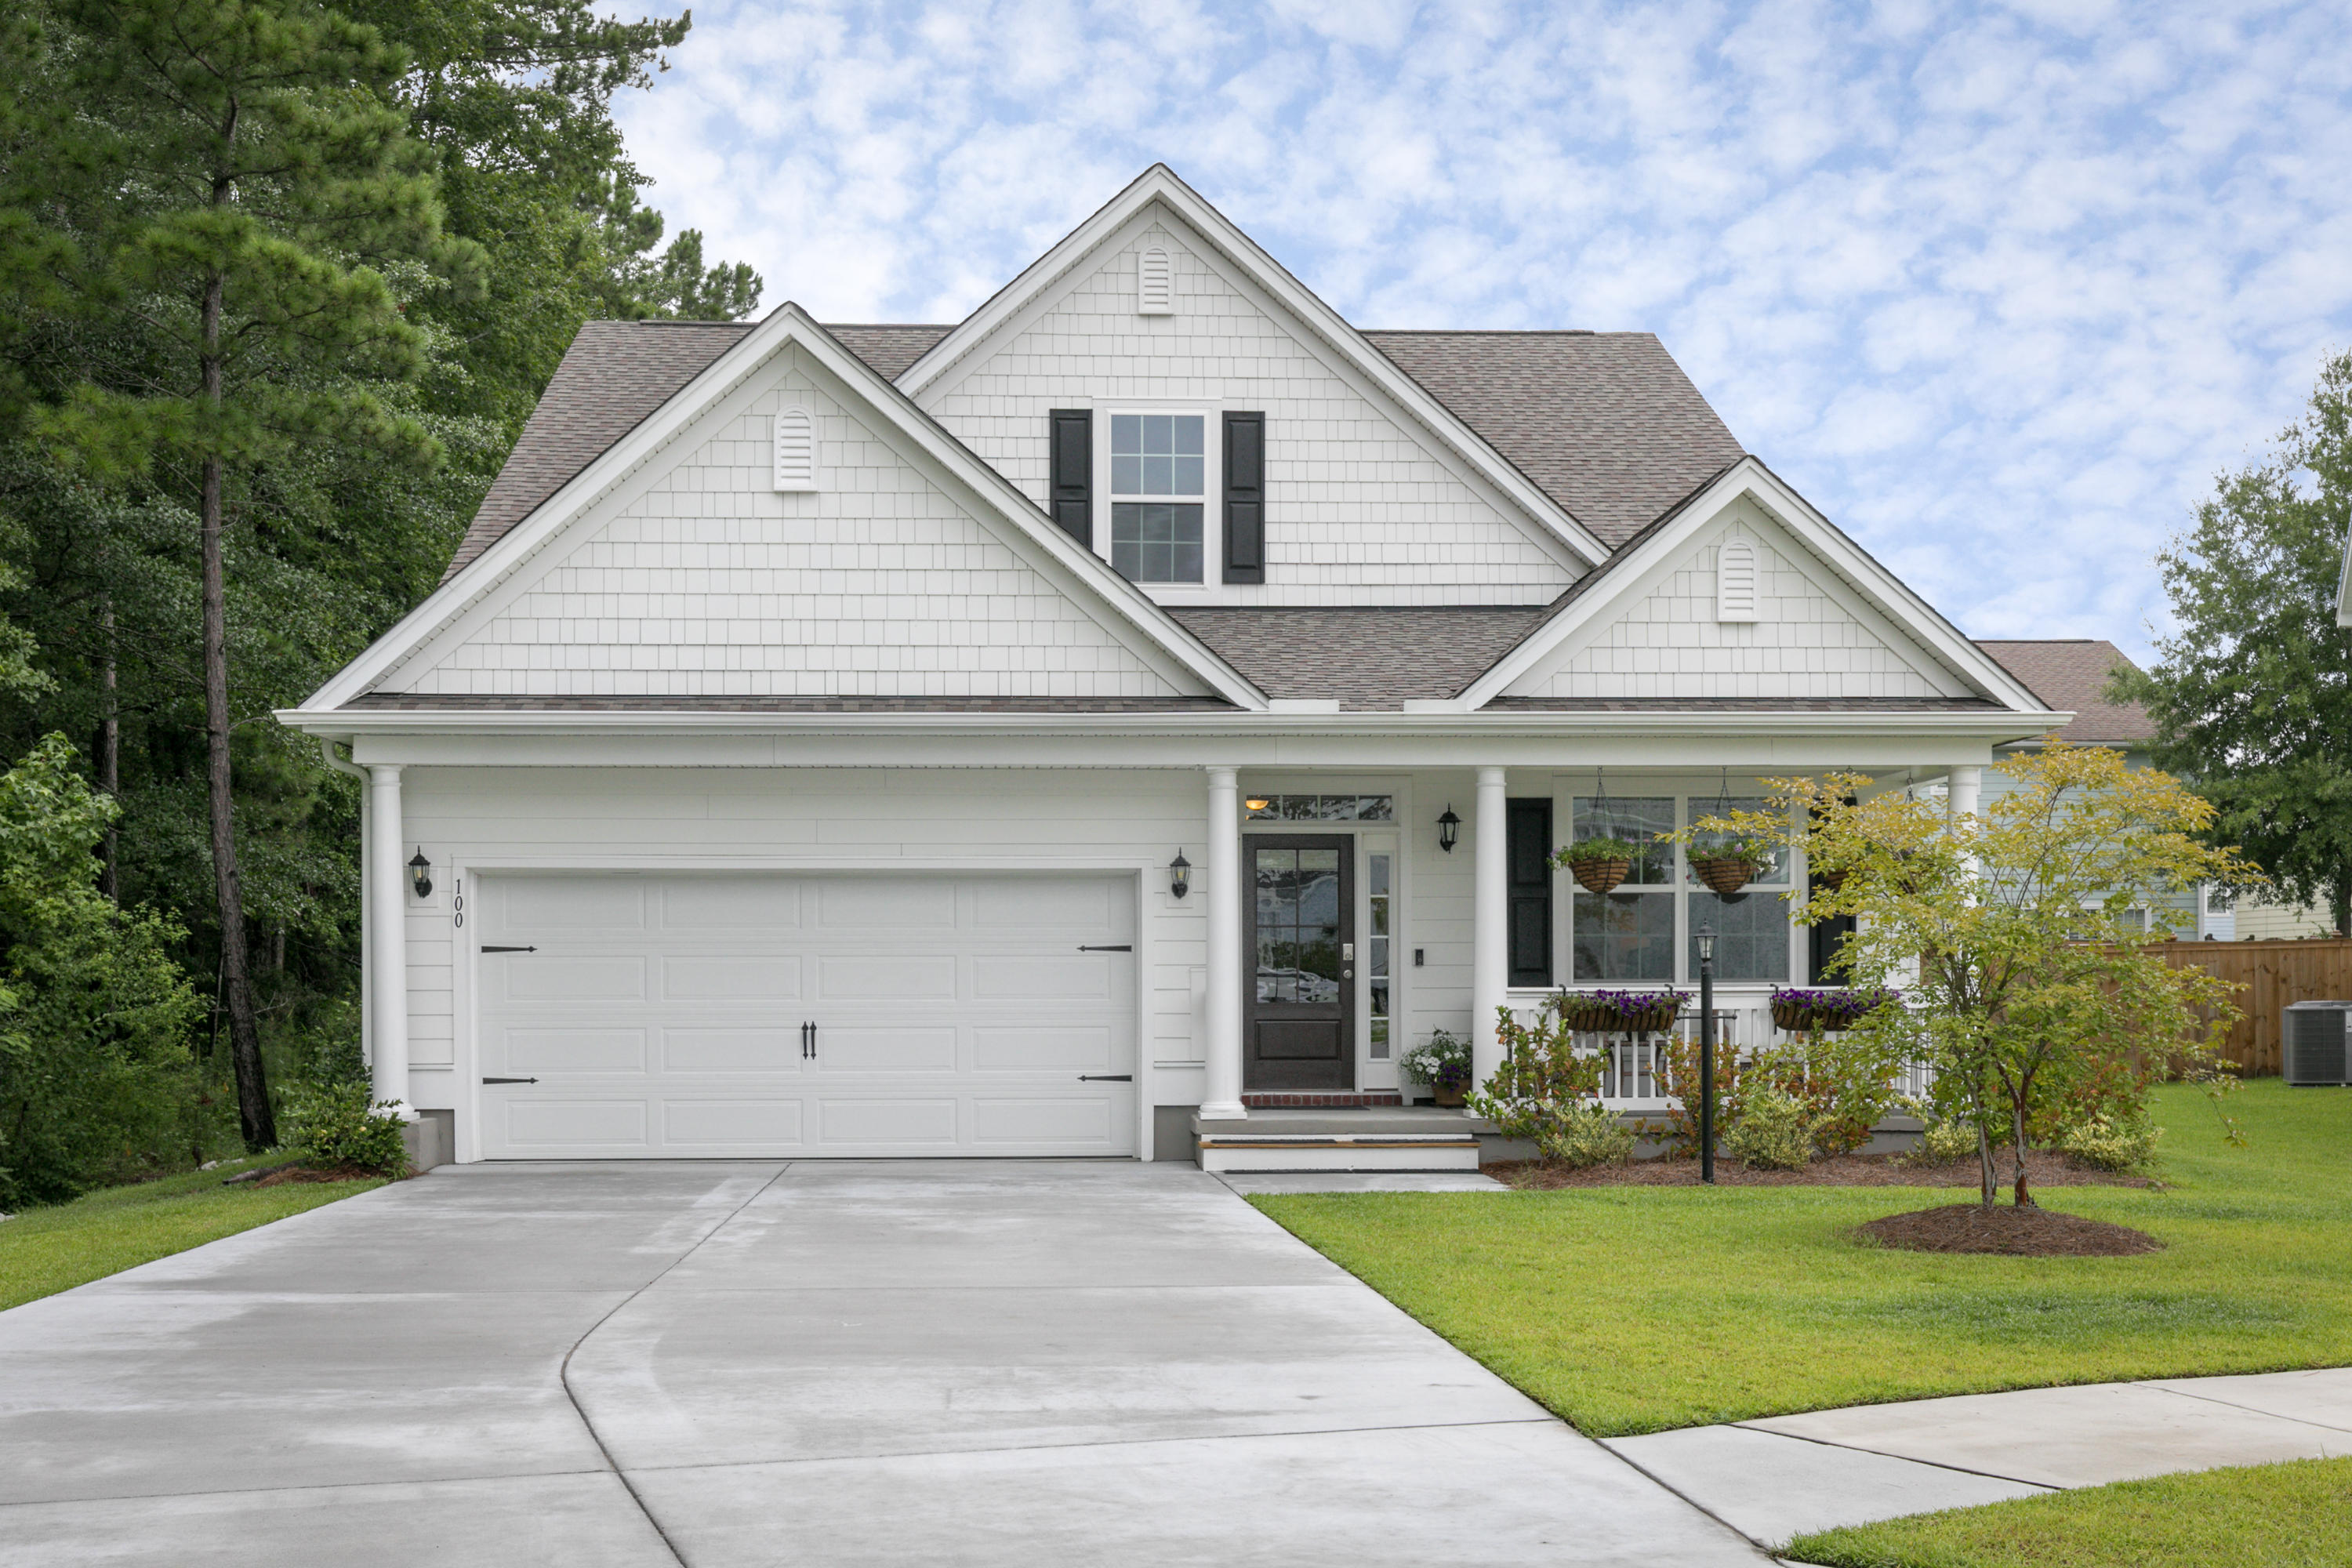 100 Waning Way Wando, SC 29492